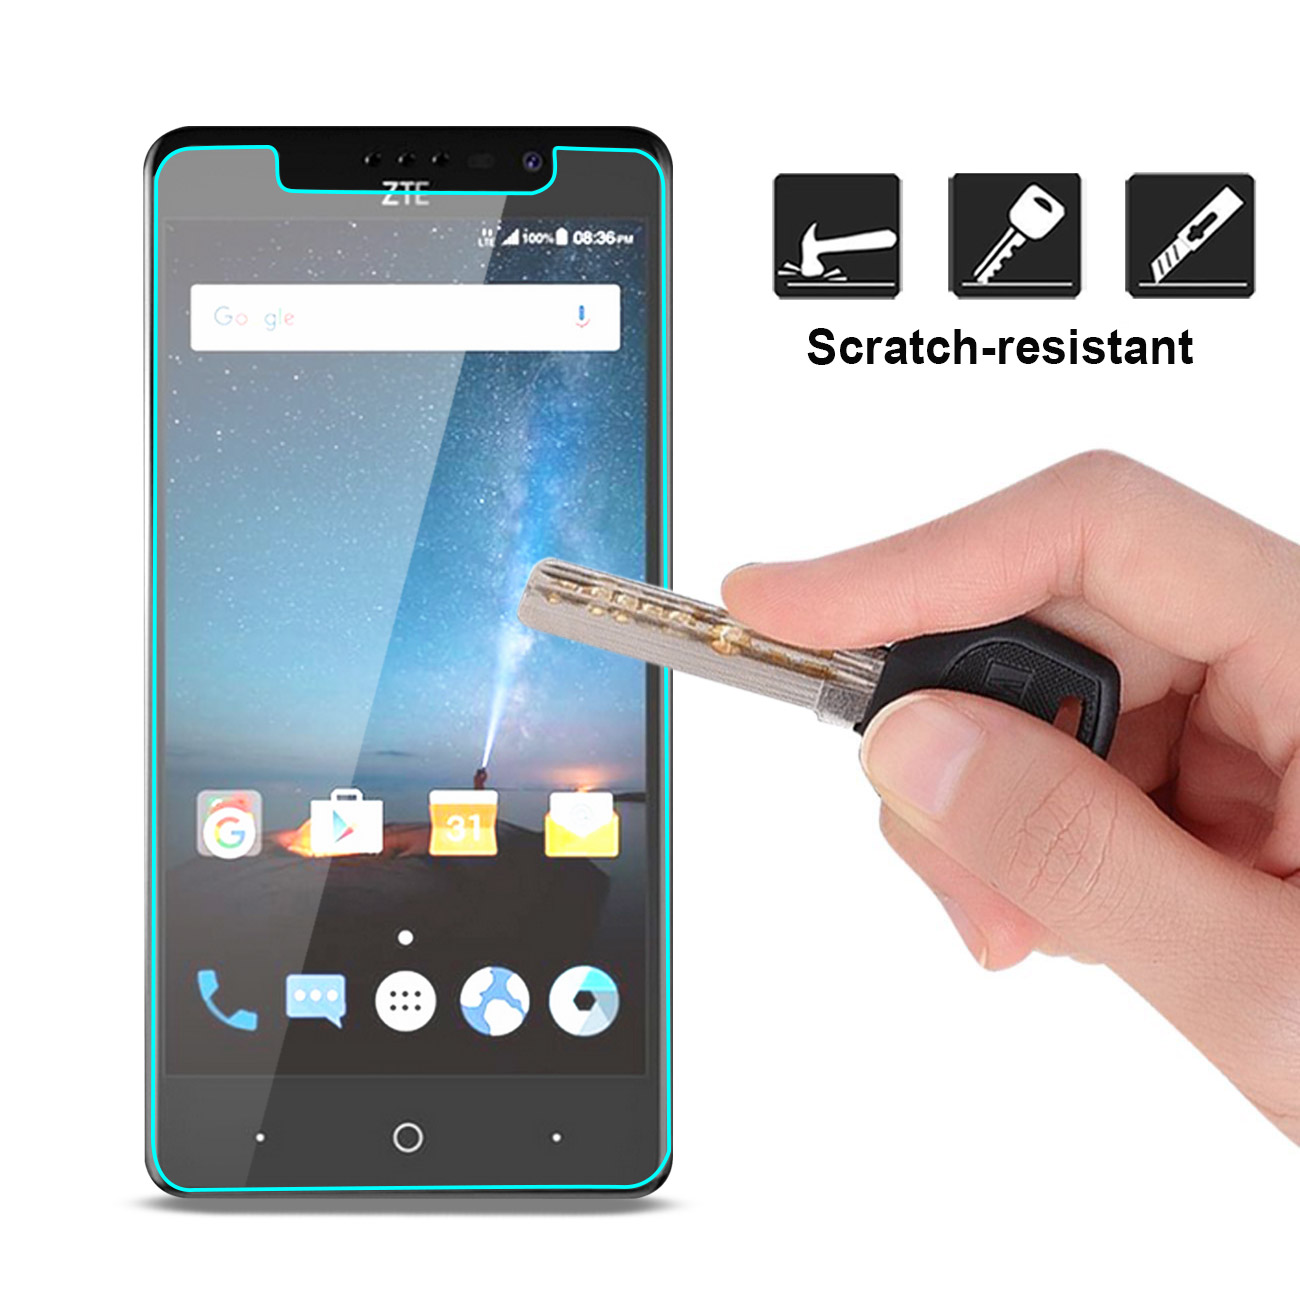 100/% fits Vikuiti 2X CV8 Screen Protector for ZTE Reef high Adhesiveness Scratch-Resistant Ultra Clear